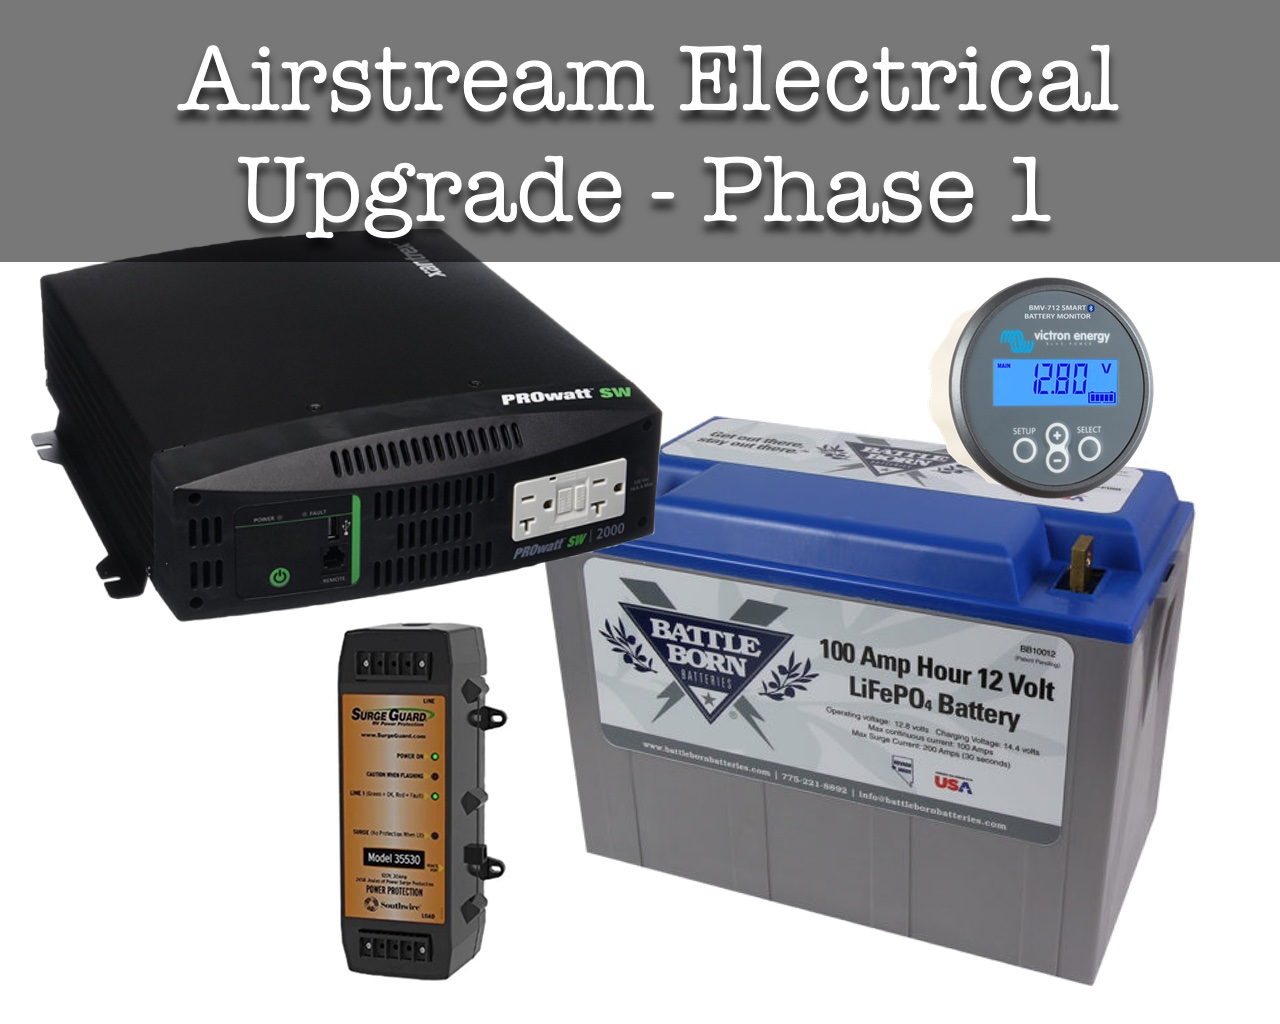 hight resolution of airstream electrical system upgrade phase i wacky wanderers home 12 volt wiring terminals negative blockblack